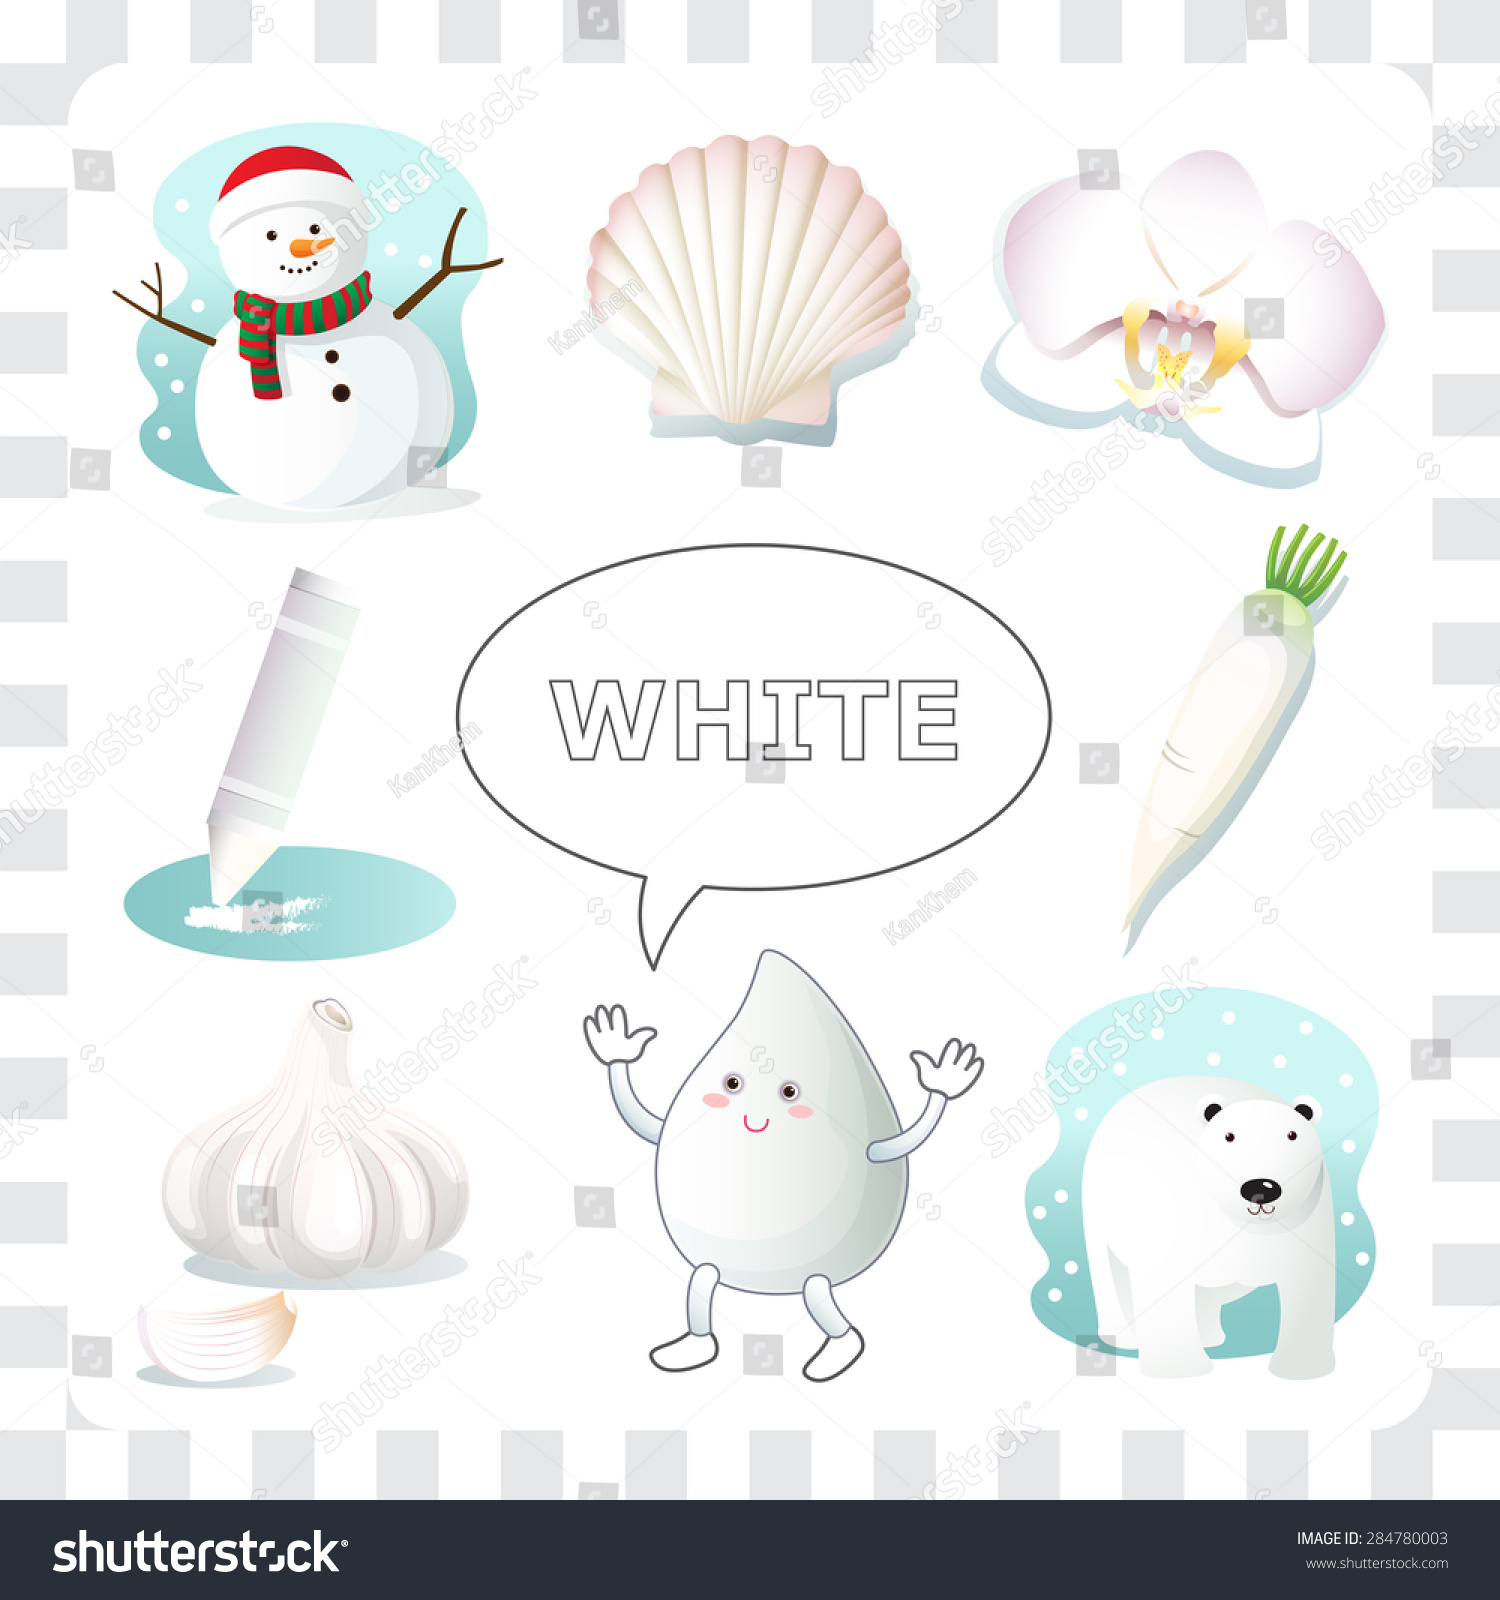 List Of Synonyms And Antonyms Of The Word White Things